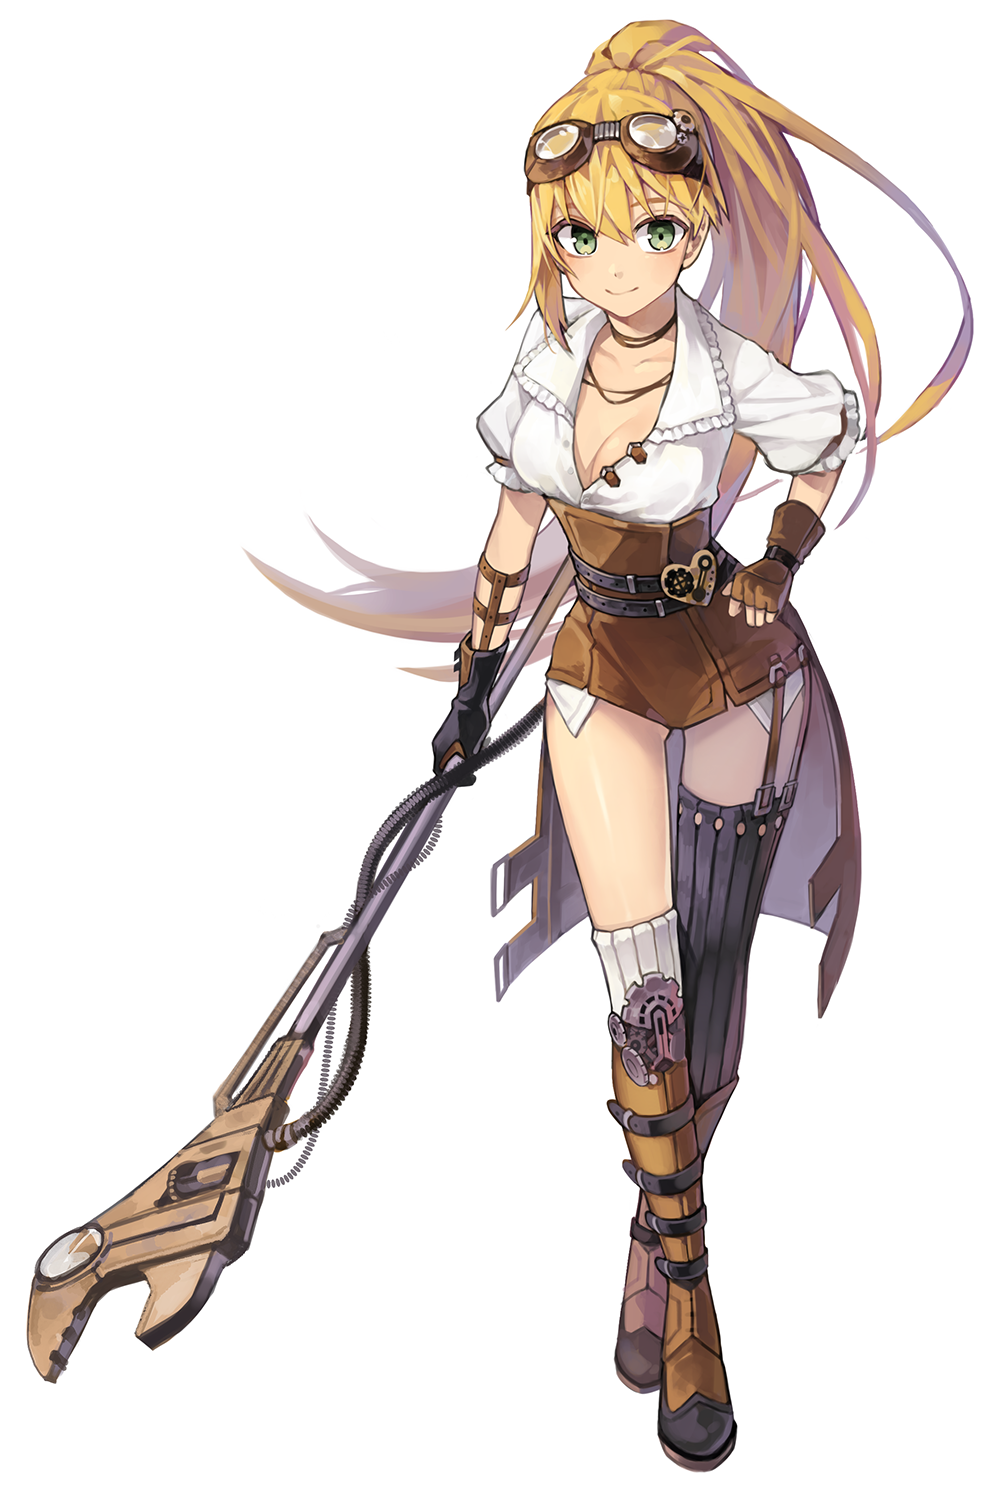 1girl belt blonde_hair breasts cleavage corset crossed_legs fingerless_gloves gears gloves green_eyes highres kinchee long_hair looking_at_viewer mismatched_legwear original ponytail ribbed_legwear smile staff standing steampunk thigh-highs very_long_hair wrench